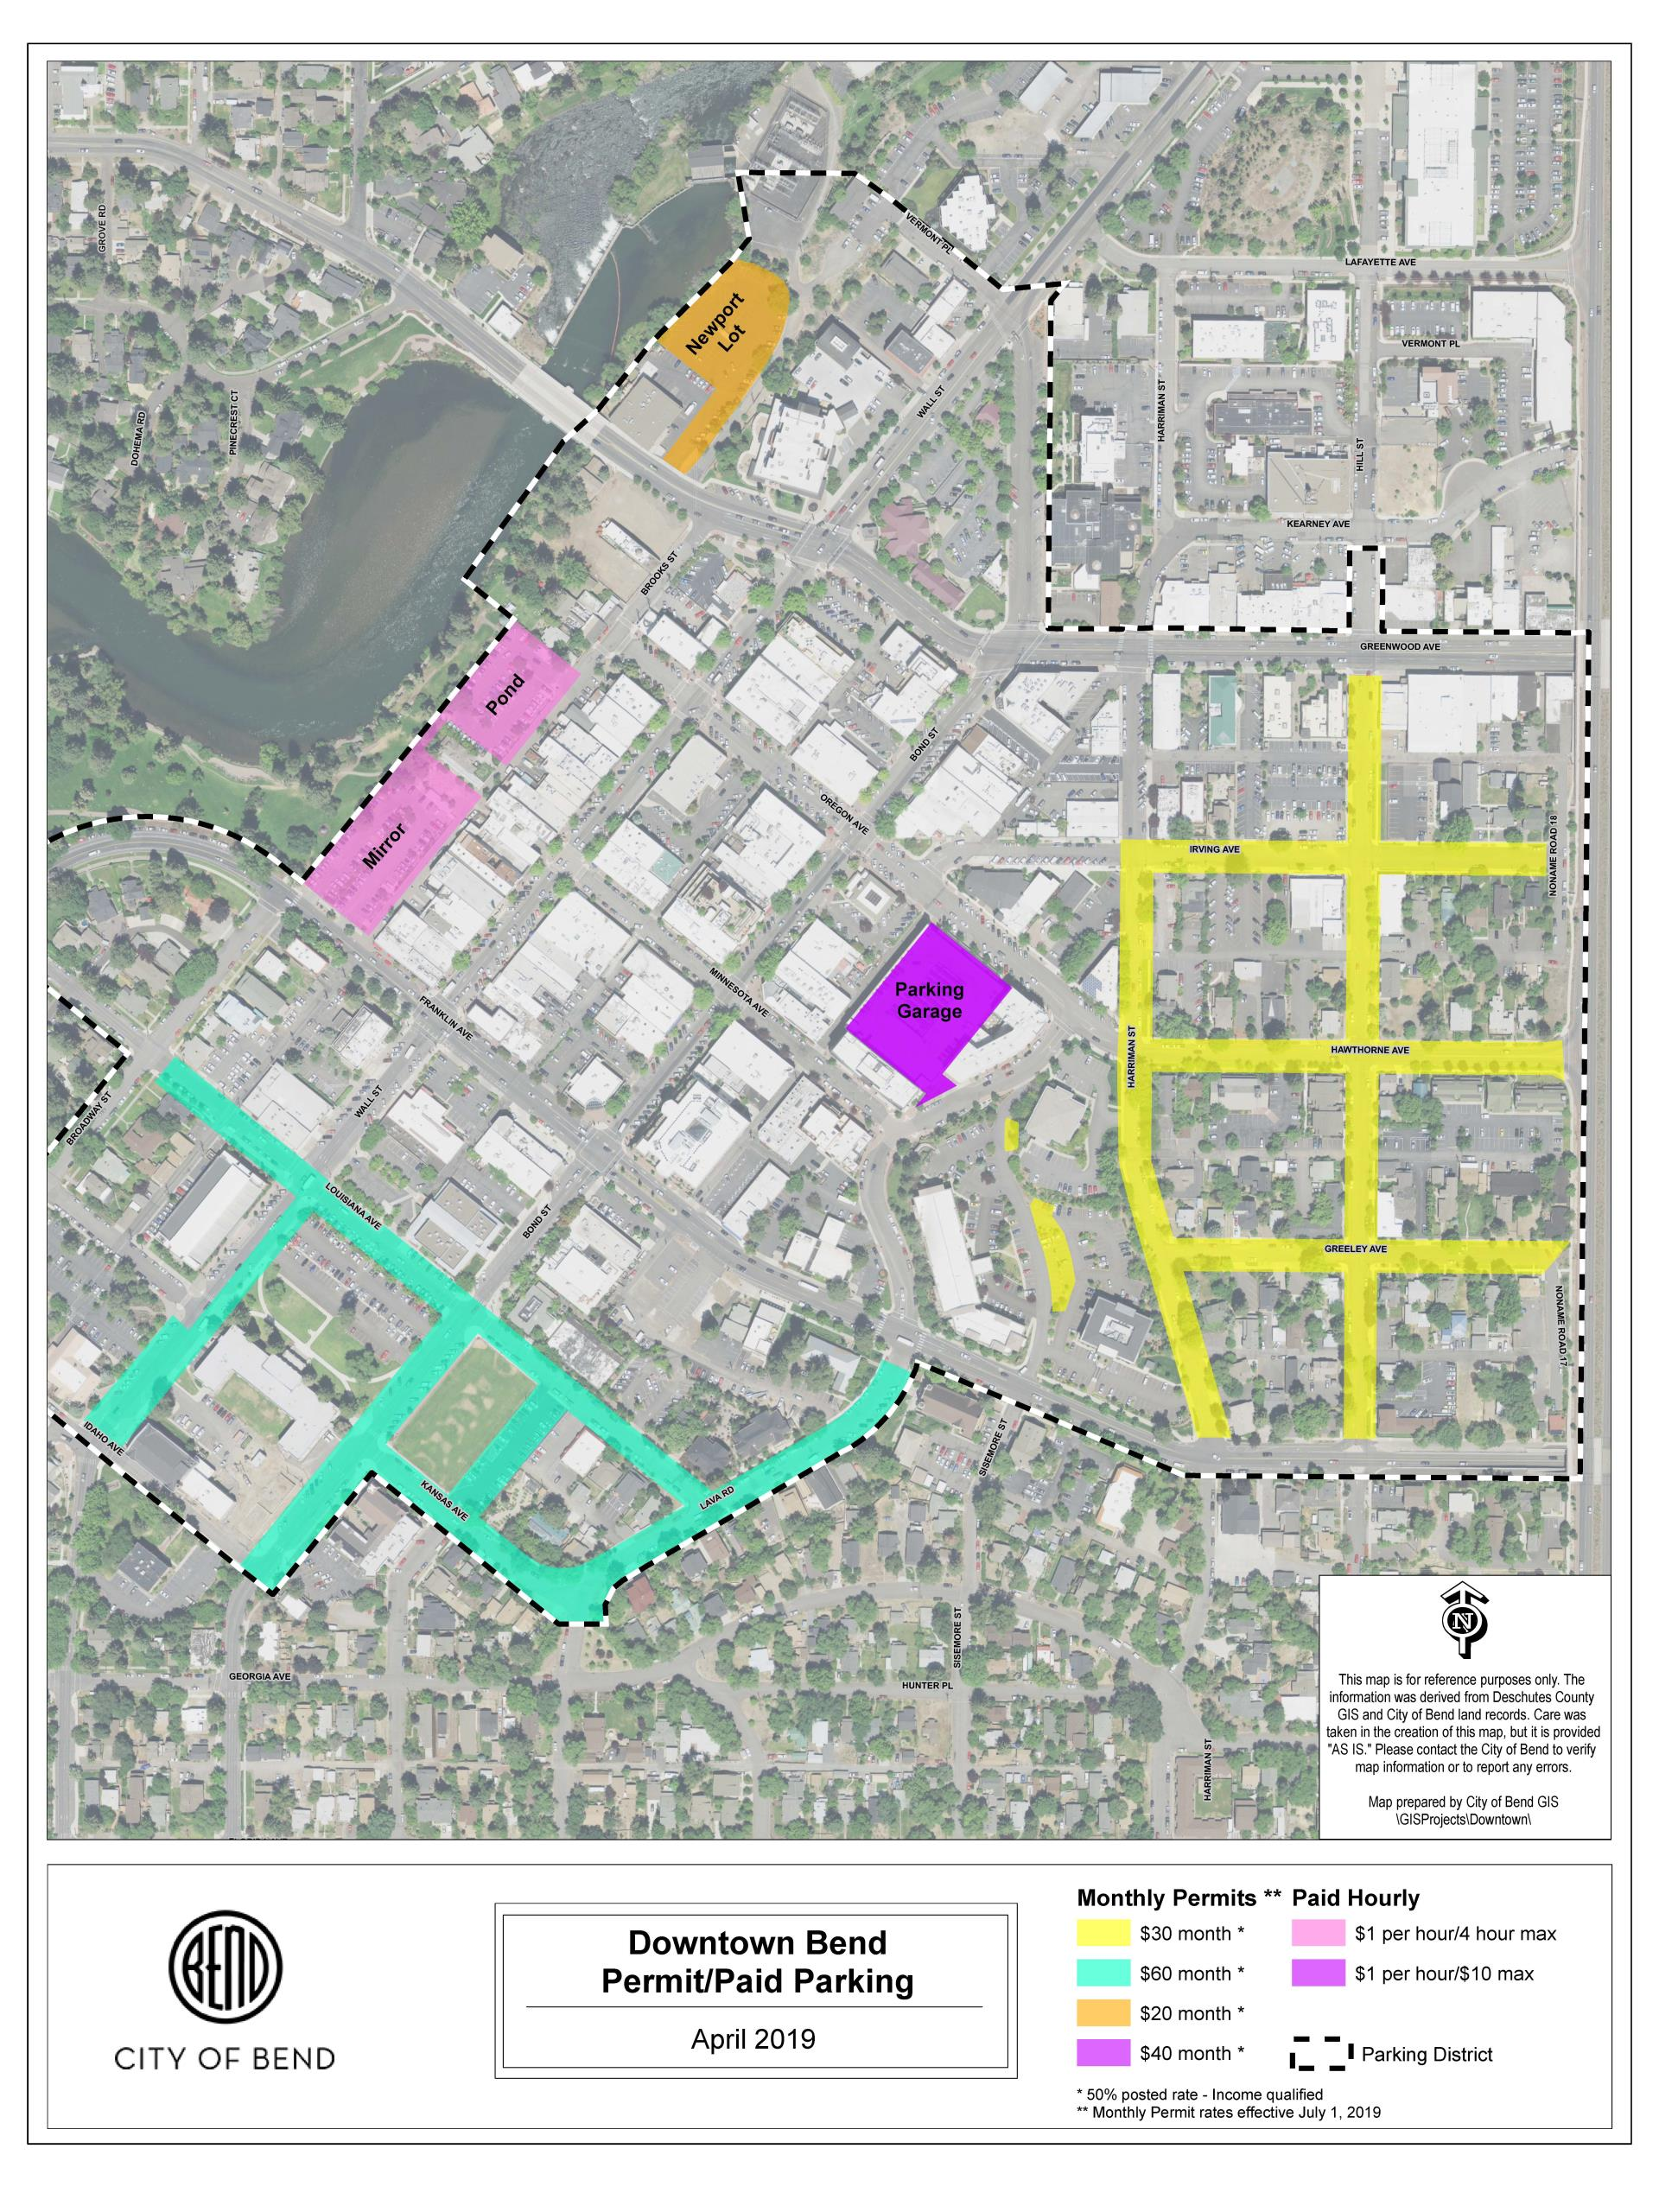 Downtown Permit Paid Parking Map rev 4/30/19